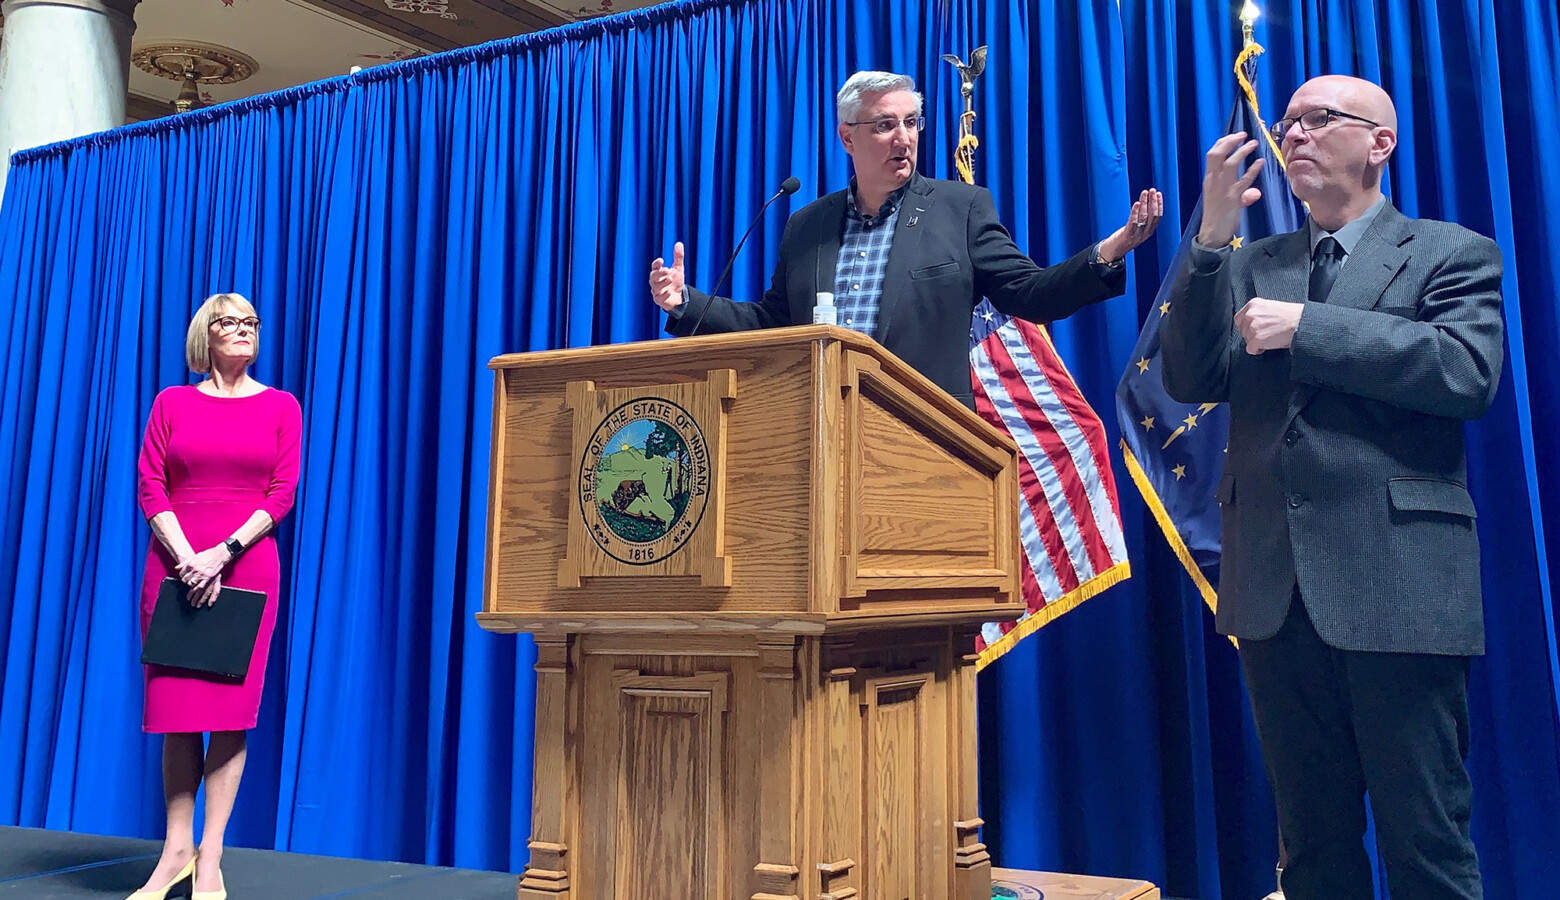 Gov. Eric Holcomb discusses the state's latest updates on COVID-19 relief. (Brandon Smith/IPB News)